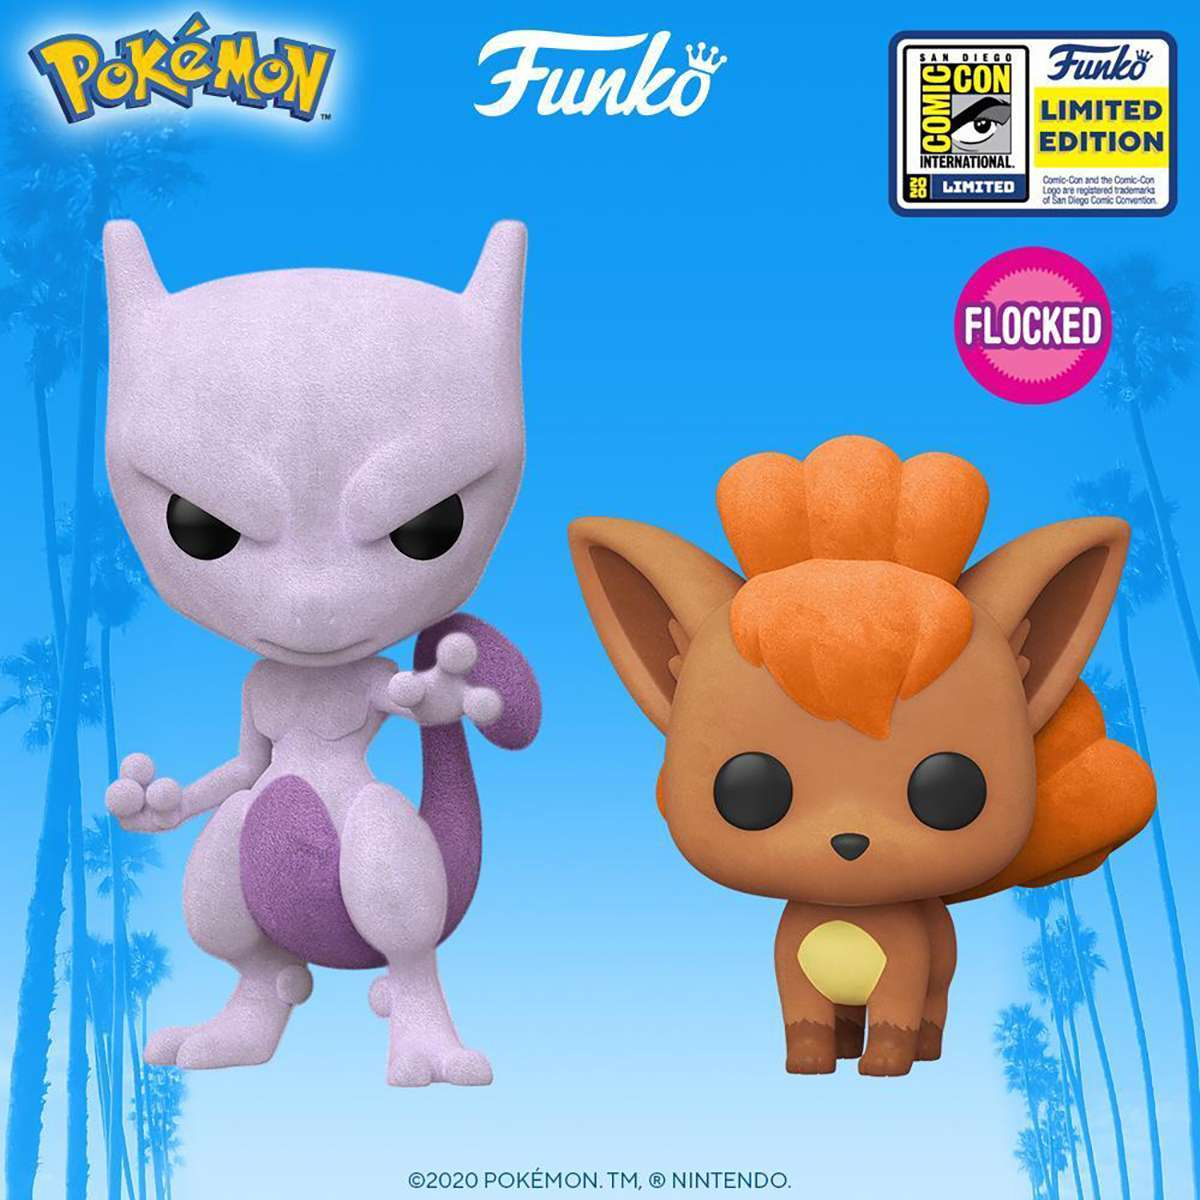 Pokemon-Flocked-Mewtwo-Vulpix-Funko-Pop